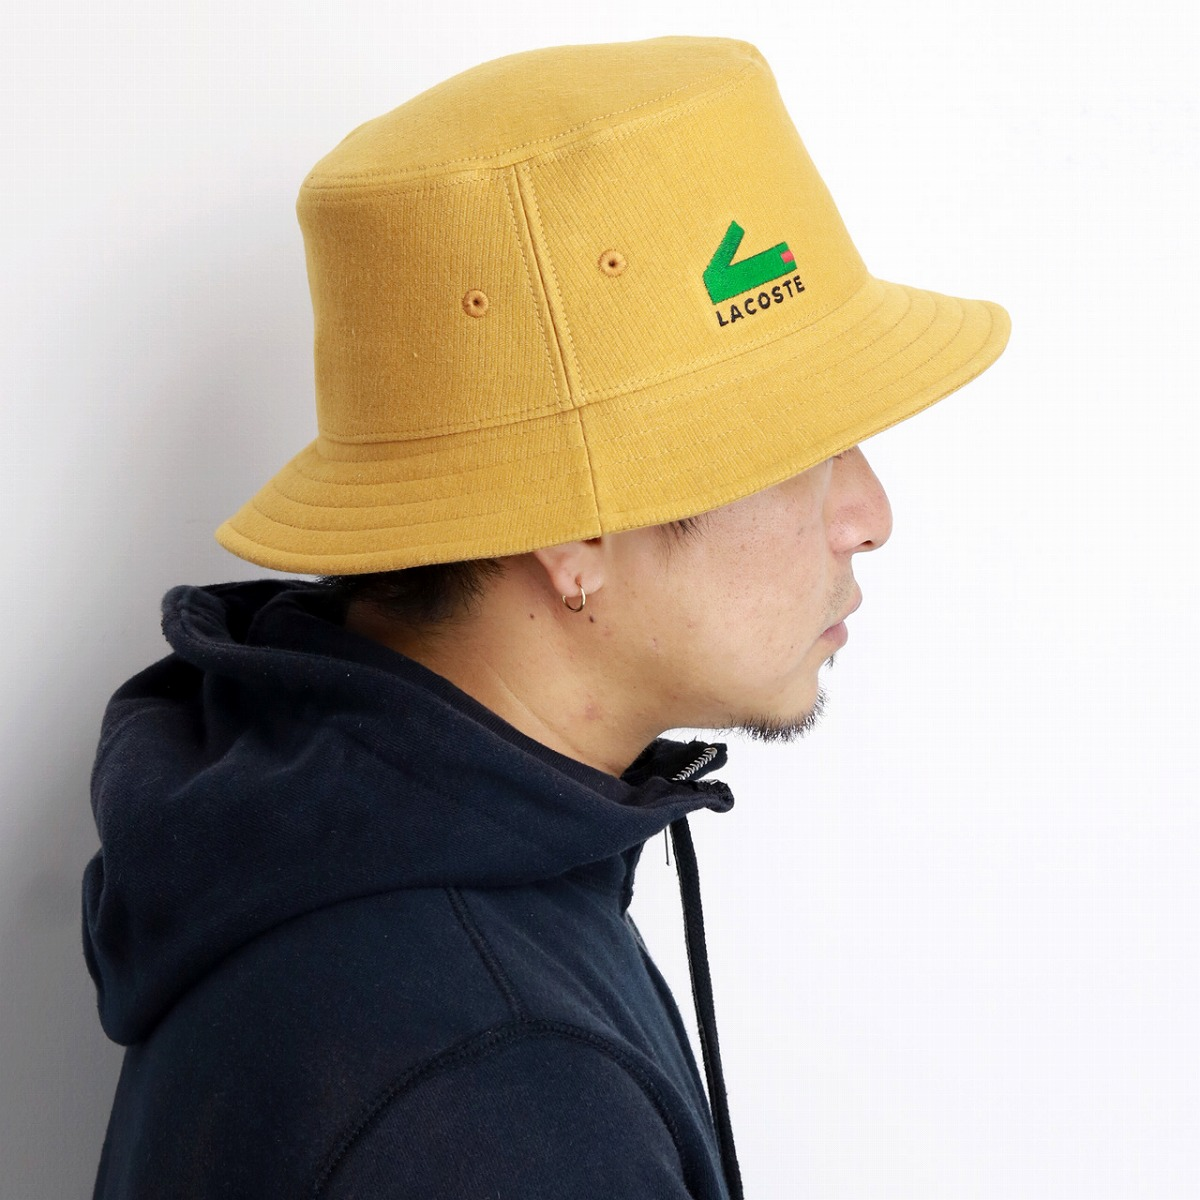 e7da1a8c37ae0c ELEHELM HAT STORE: Hat Sakha re-men's Lacoste hat Lady's lacoste safari hat  Shin pull pail hat plain fabric crocodile brand awning outdoor mountain  climbing ...